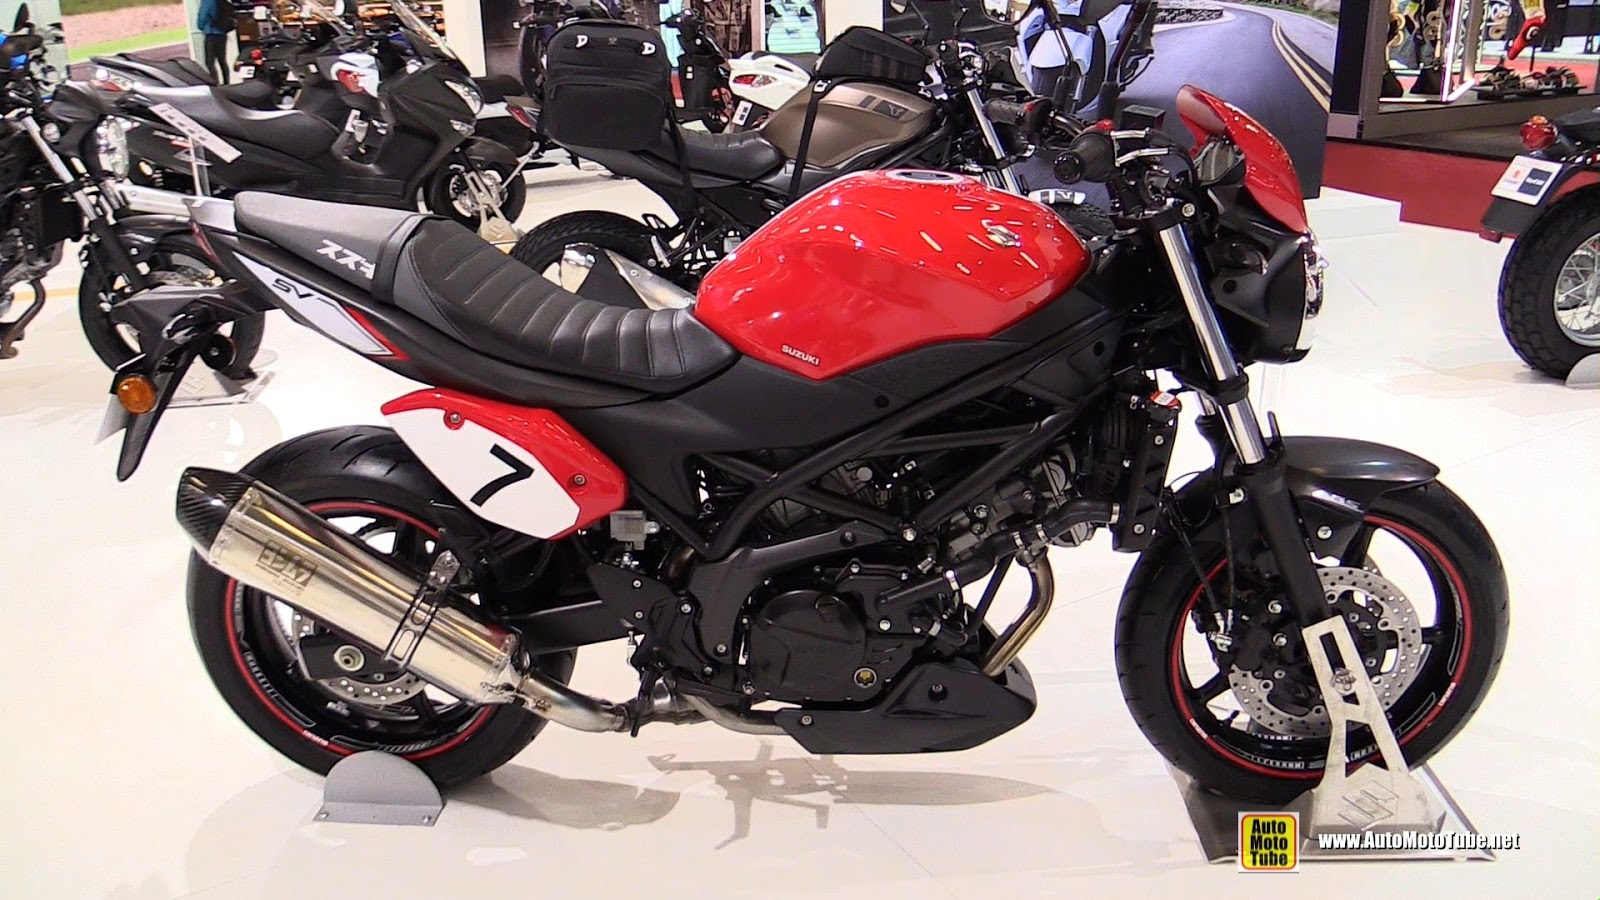 2017 suzuki sv650 naked review news motobikes news. Black Bedroom Furniture Sets. Home Design Ideas